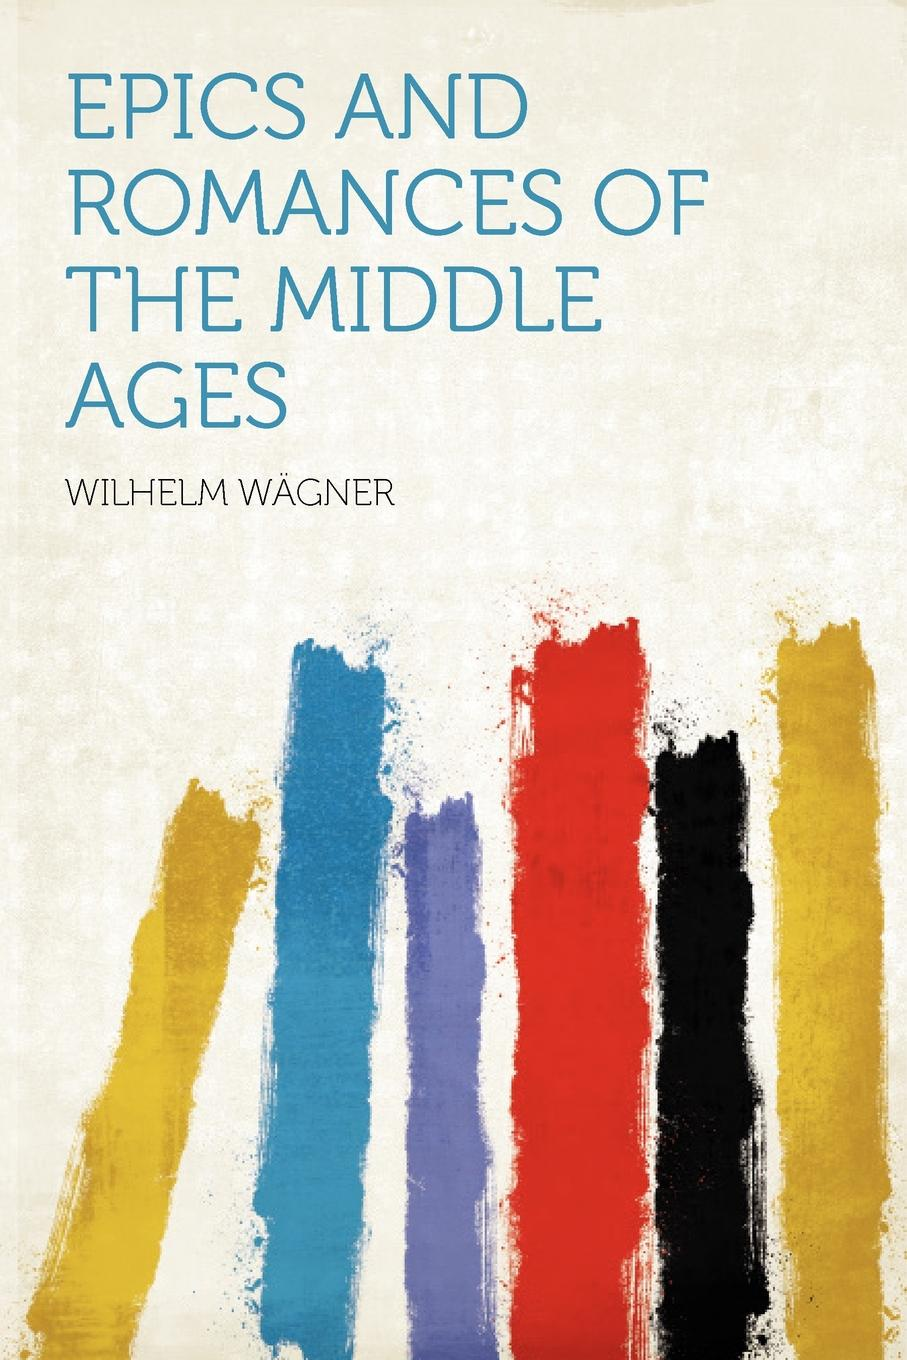 Epics and Romances of the Middle Ages wilhelm wägner epics and romances of the middle ages